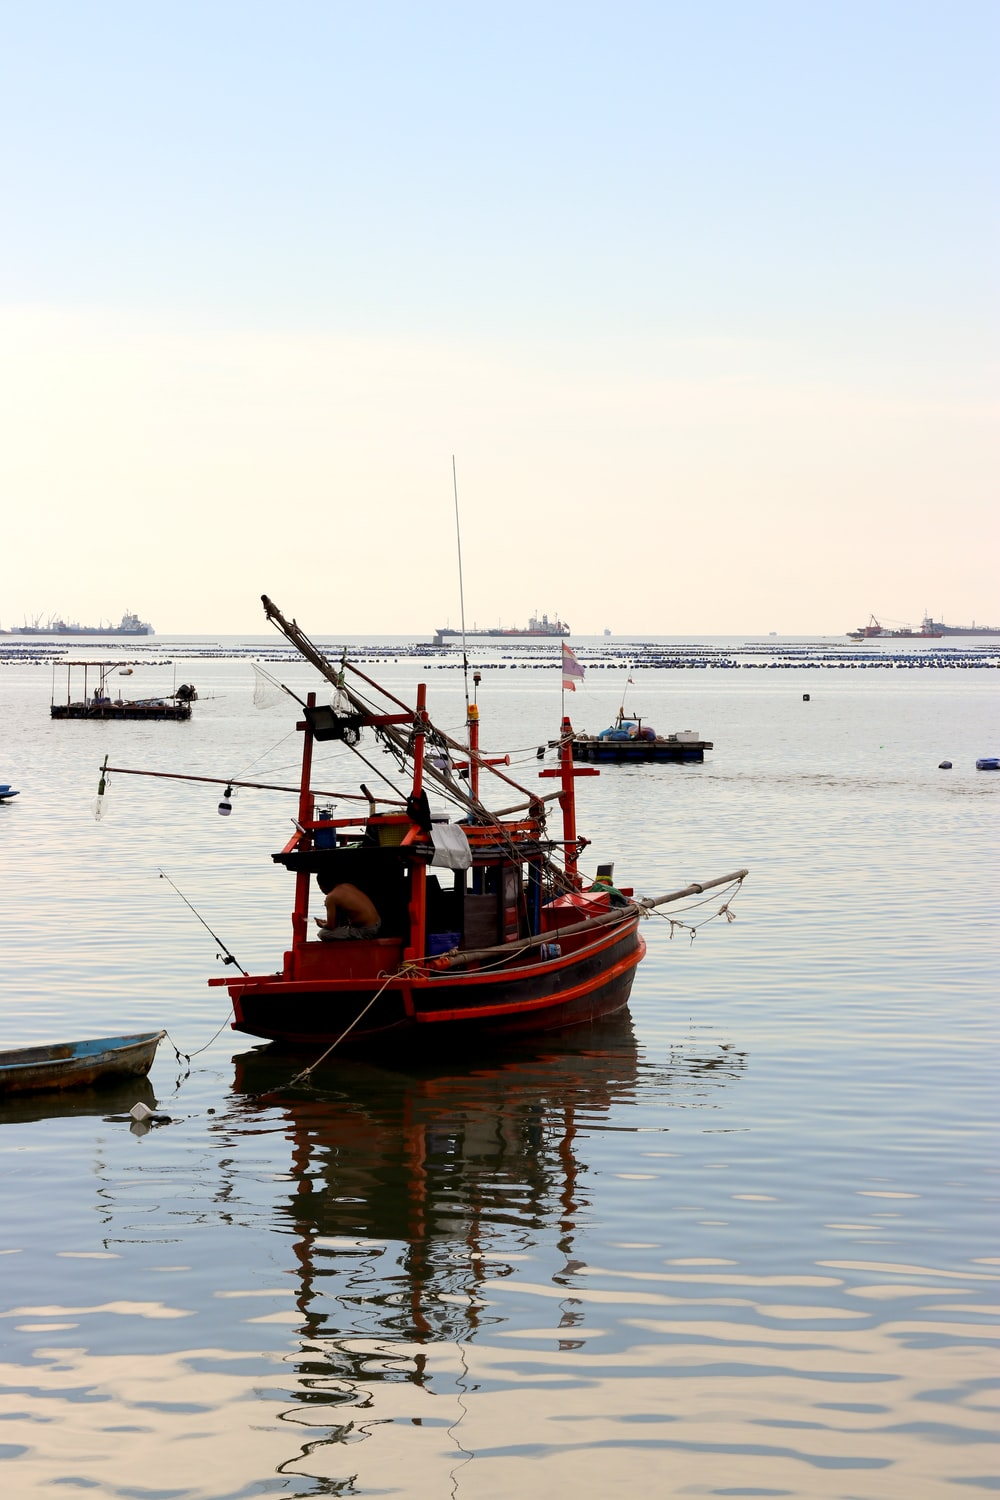 red and black boat on water during daytime